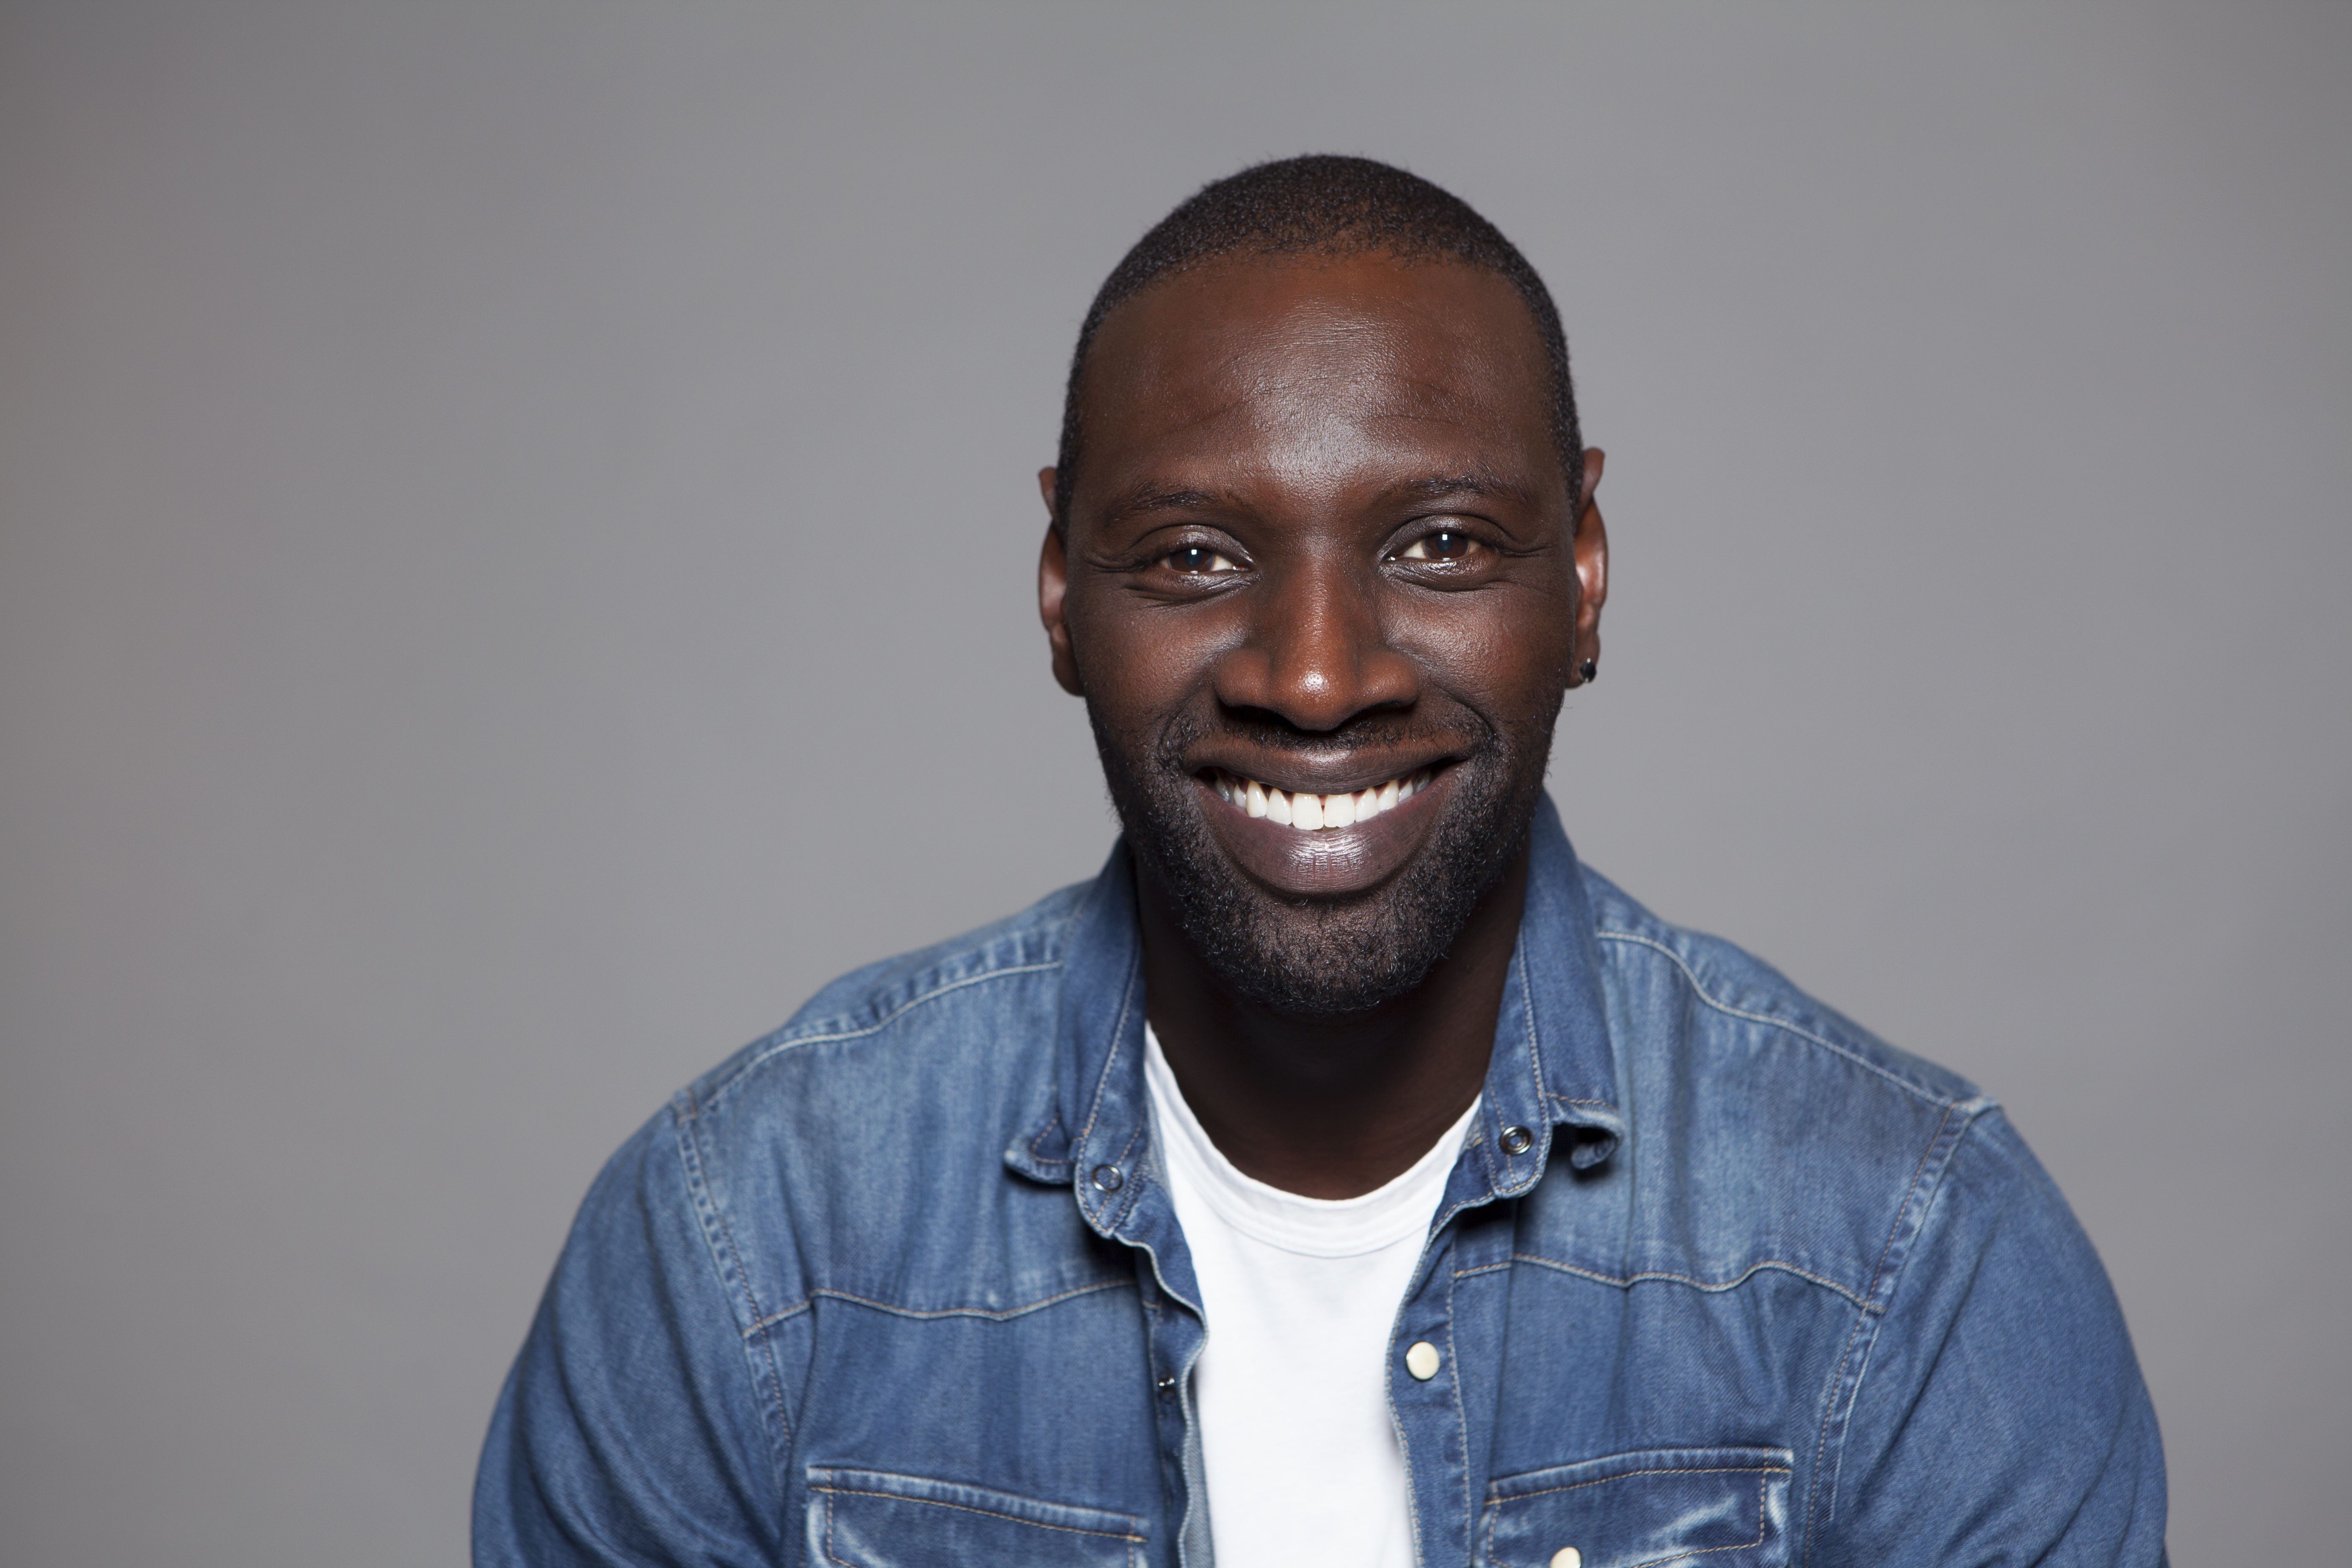 5616x3744 - Omar Sy Wallpapers 12